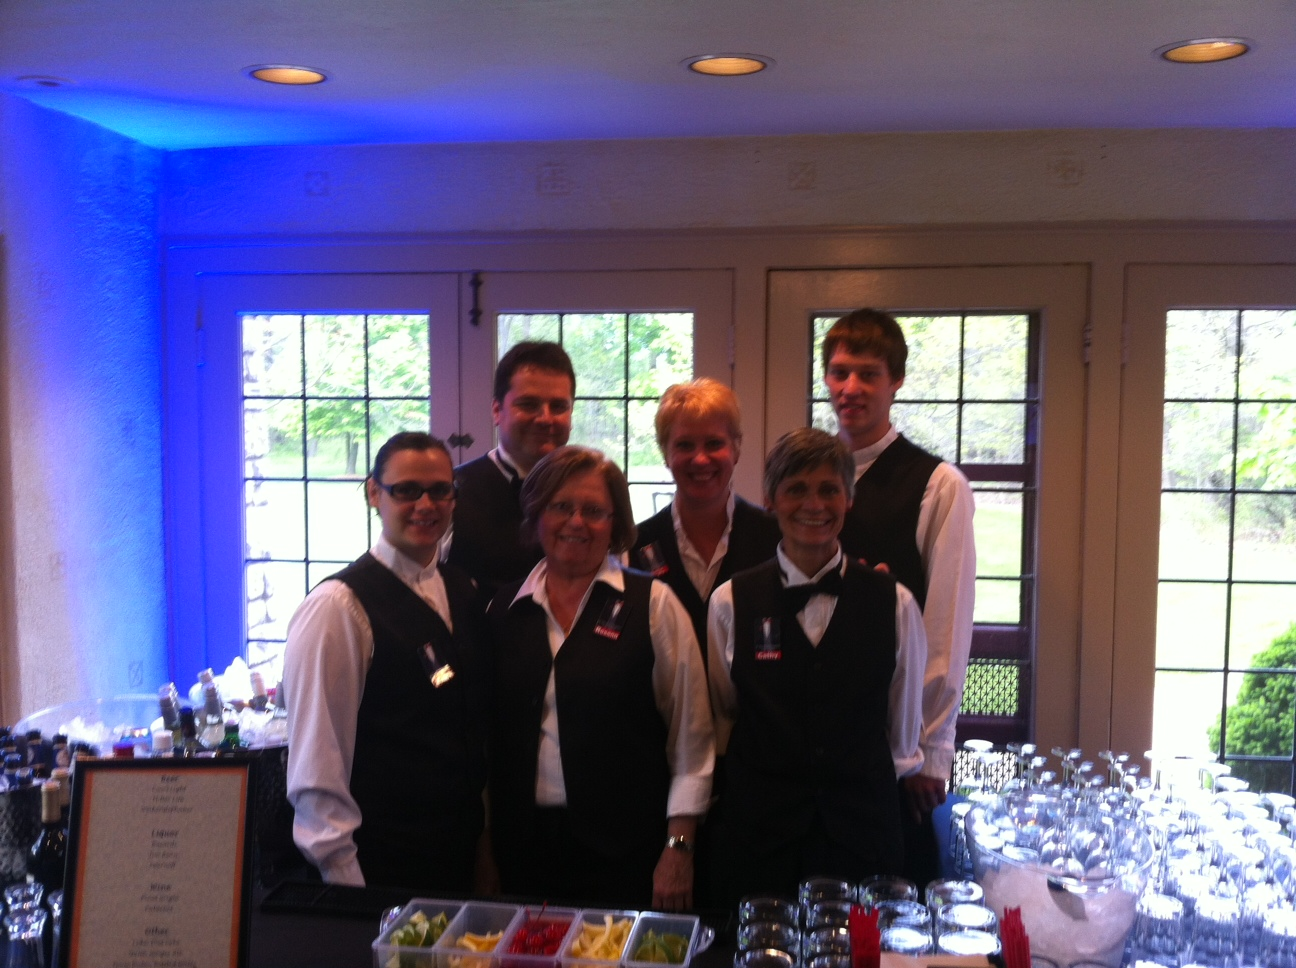 Our Servers and Bartenders are ready to work!